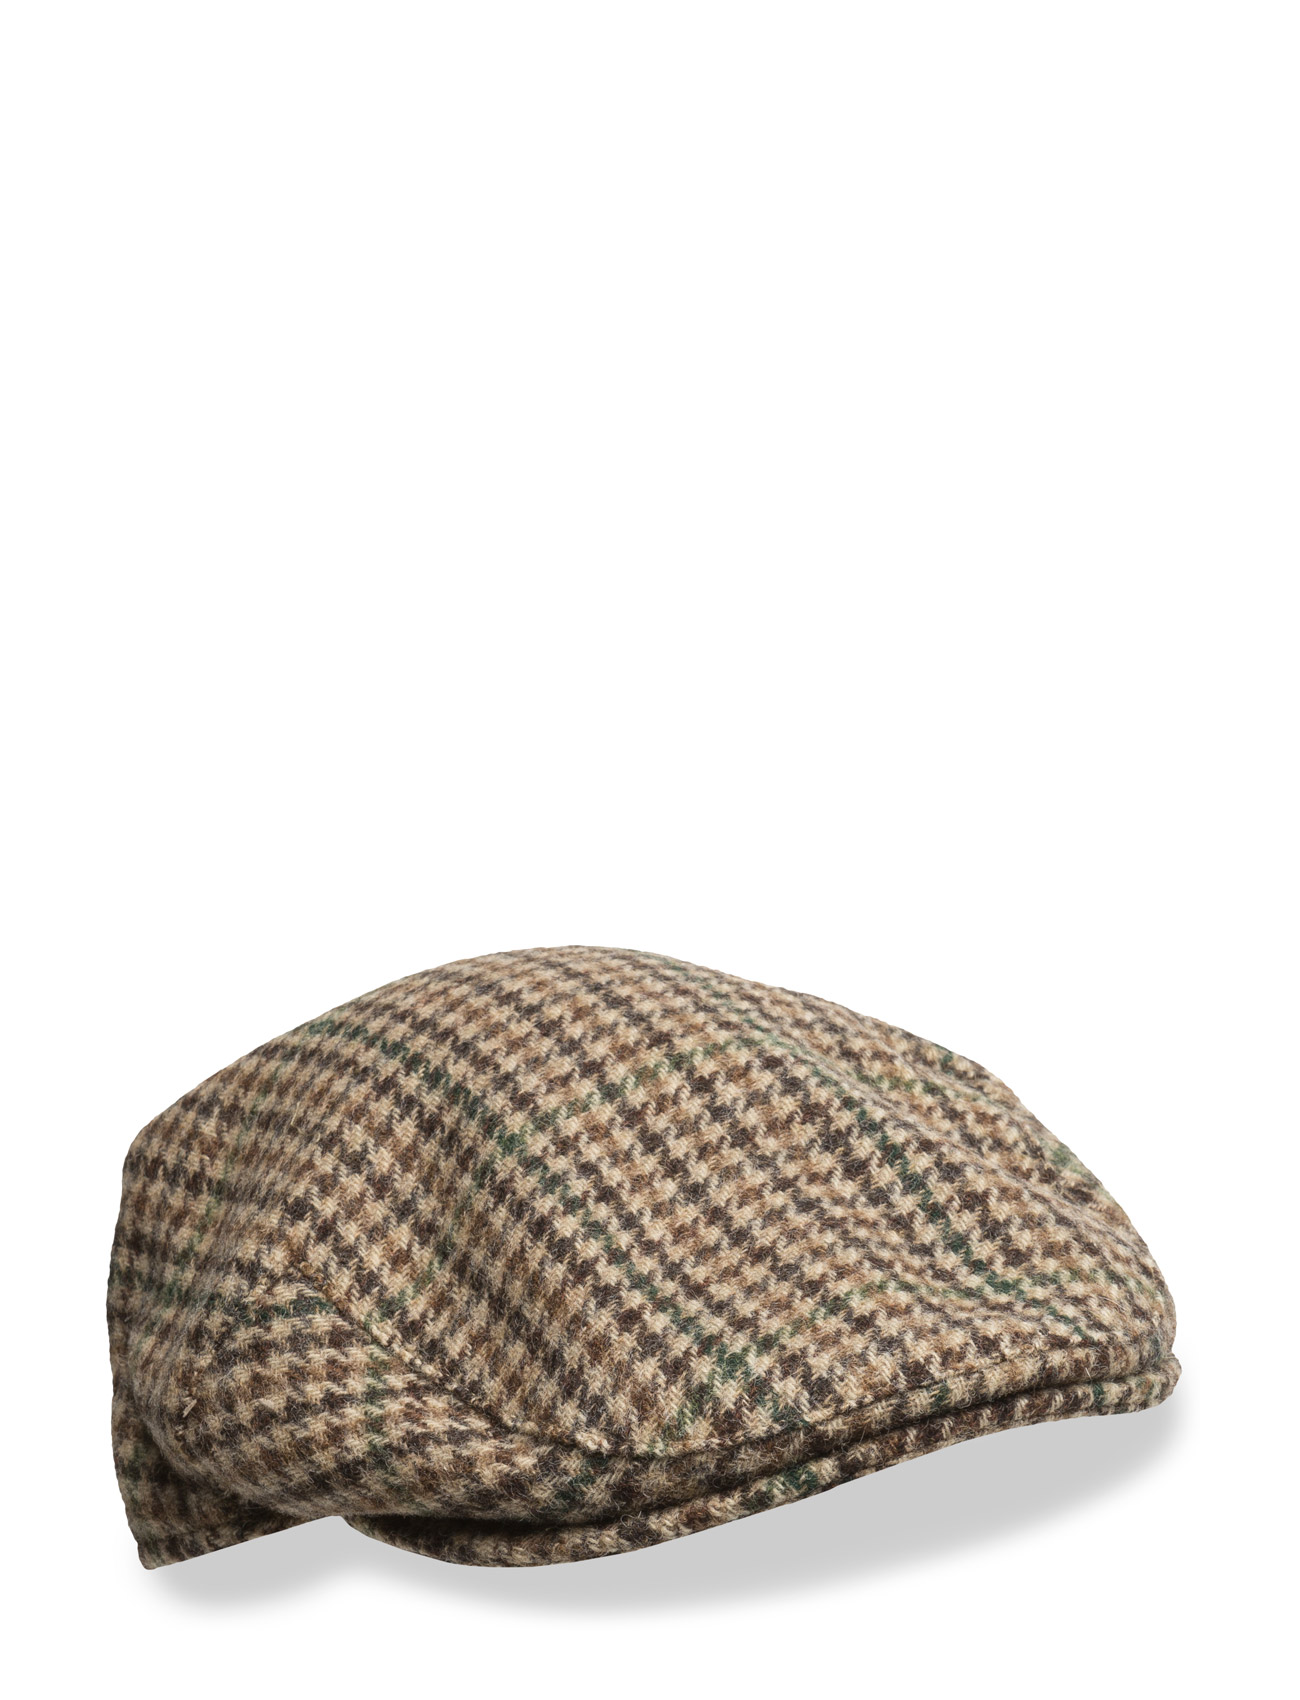 Moons Tweed Cap Barbour Hatte & Caps til Herrer i Brun